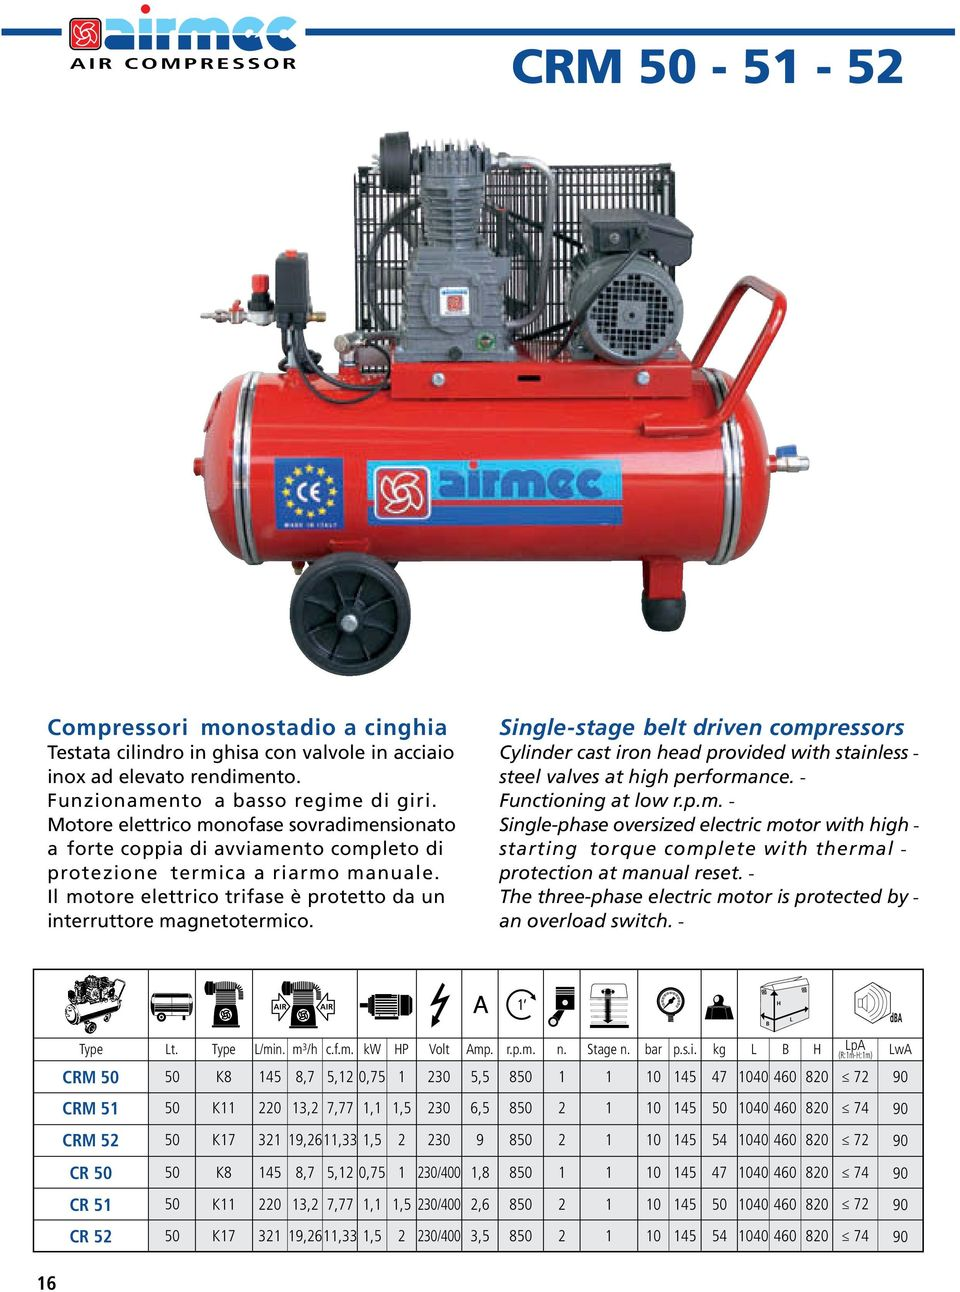 AIR AIR 1 da Single-stage belt driven compressors Cylinder cast iron head provided with stainlesssteel valves at high performance. Functioning at low r.p.m. Single-phase oversized electric motor with highstarting torque complete with thermalprotection at manual reset.